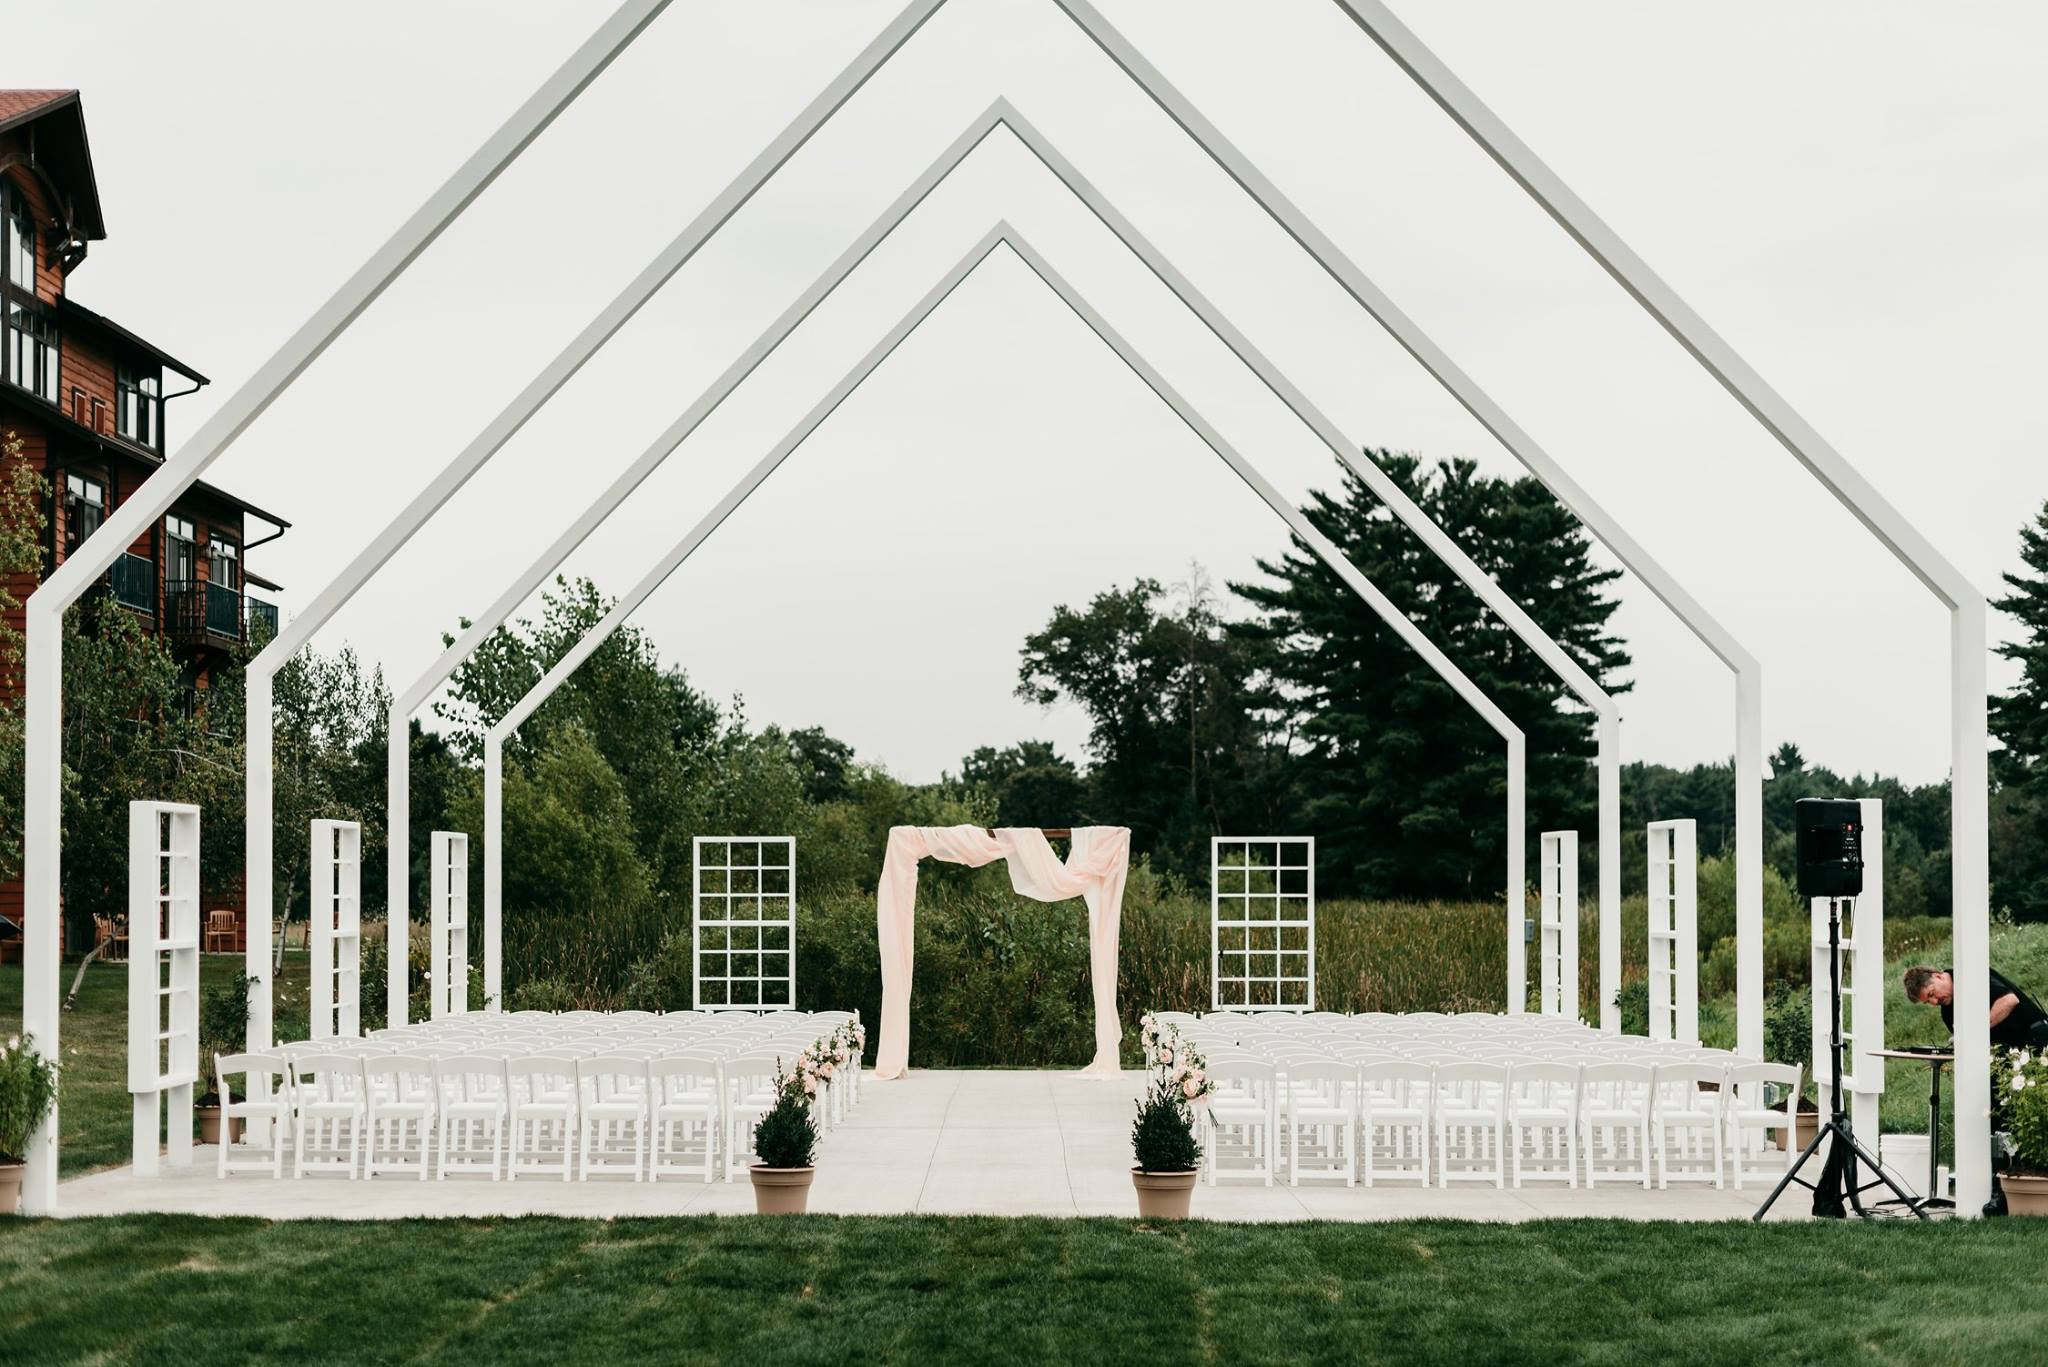 The Chapel at Chula Vista - The chapel layout could not get any better. It offers so much potential for wedding decor and keeps your guests close. Not to mention, it's location is right where all the fun happens!